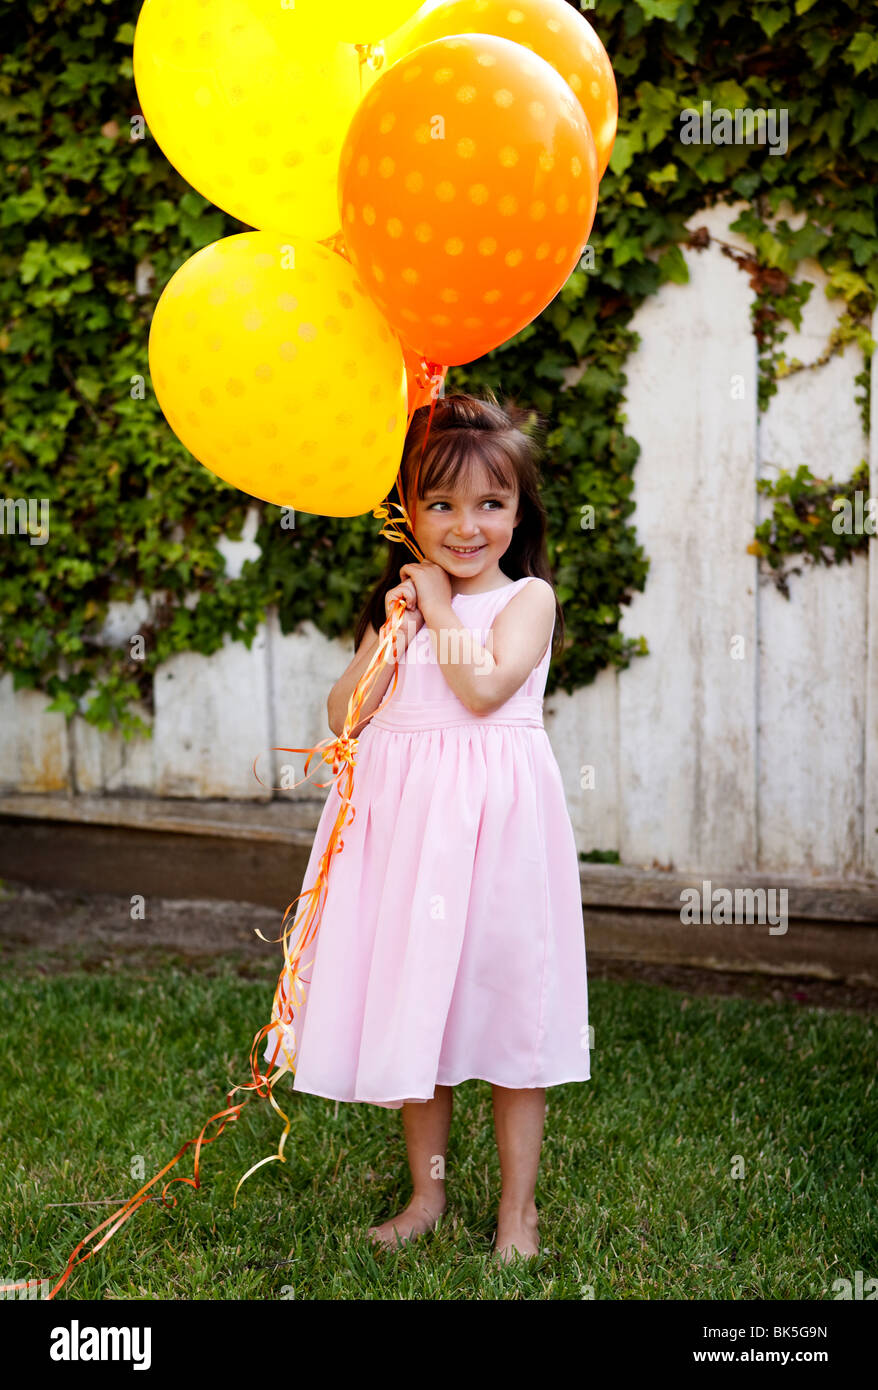 Young girl in sundress with bunch of balloons - Stock Image